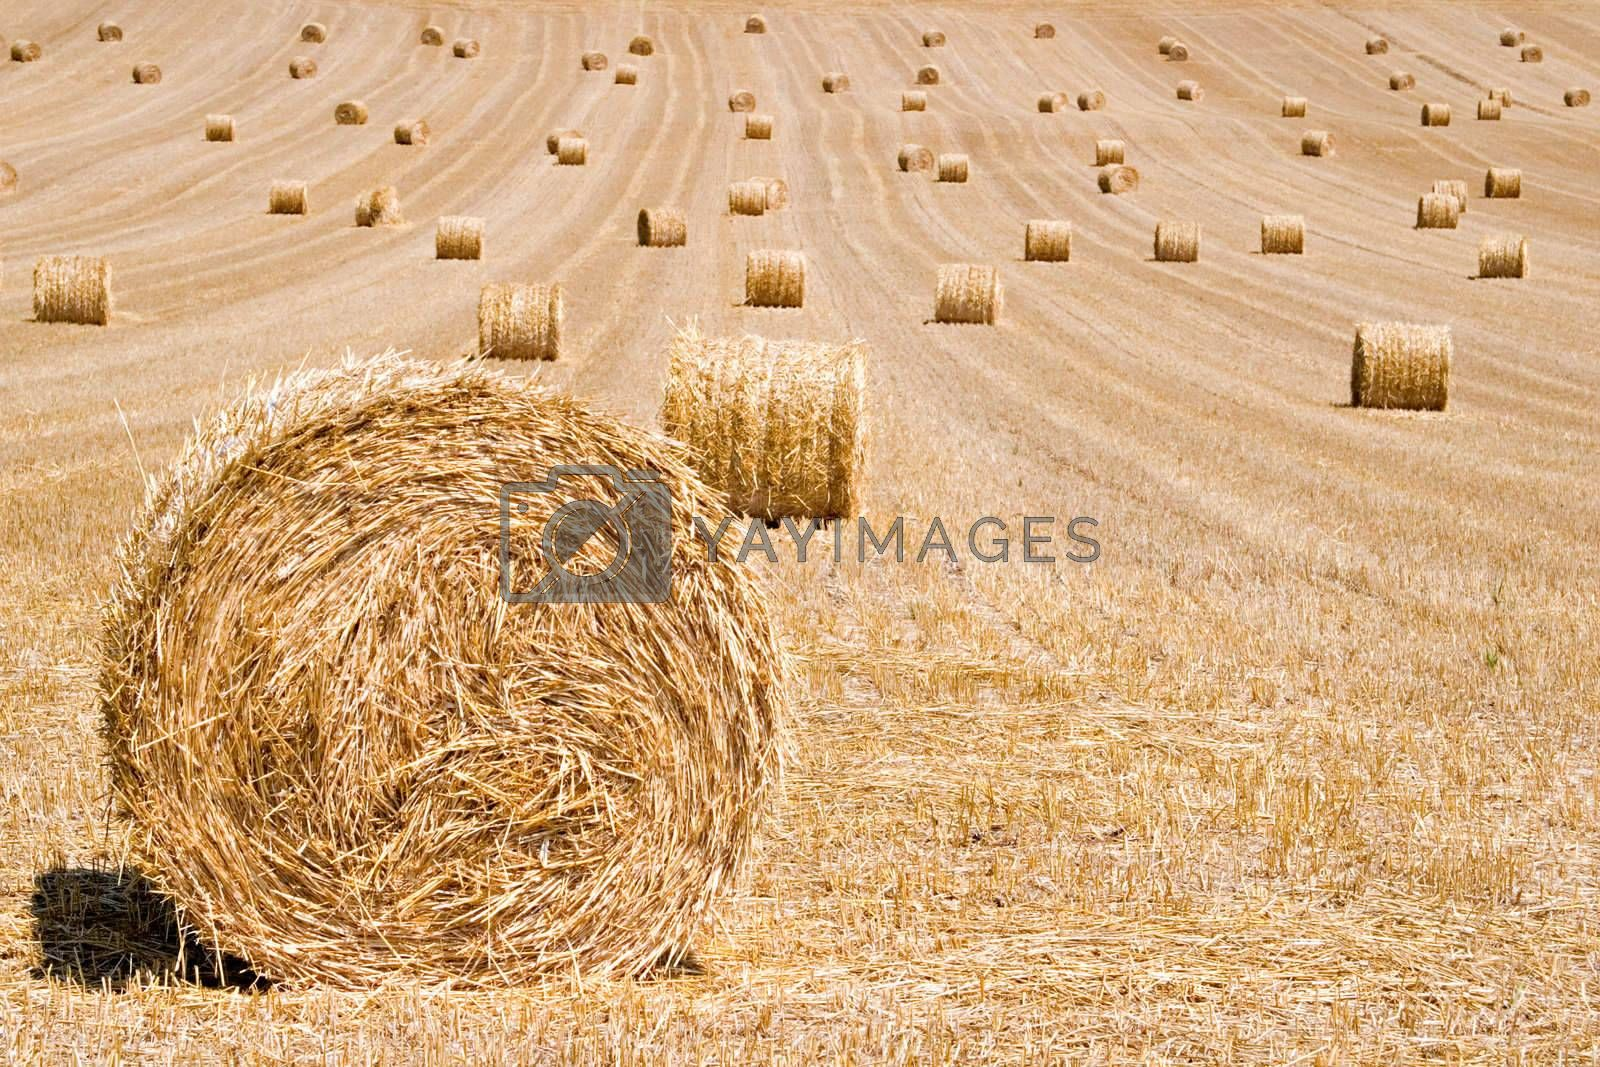 Hay bales on harvested field waiting to be collected